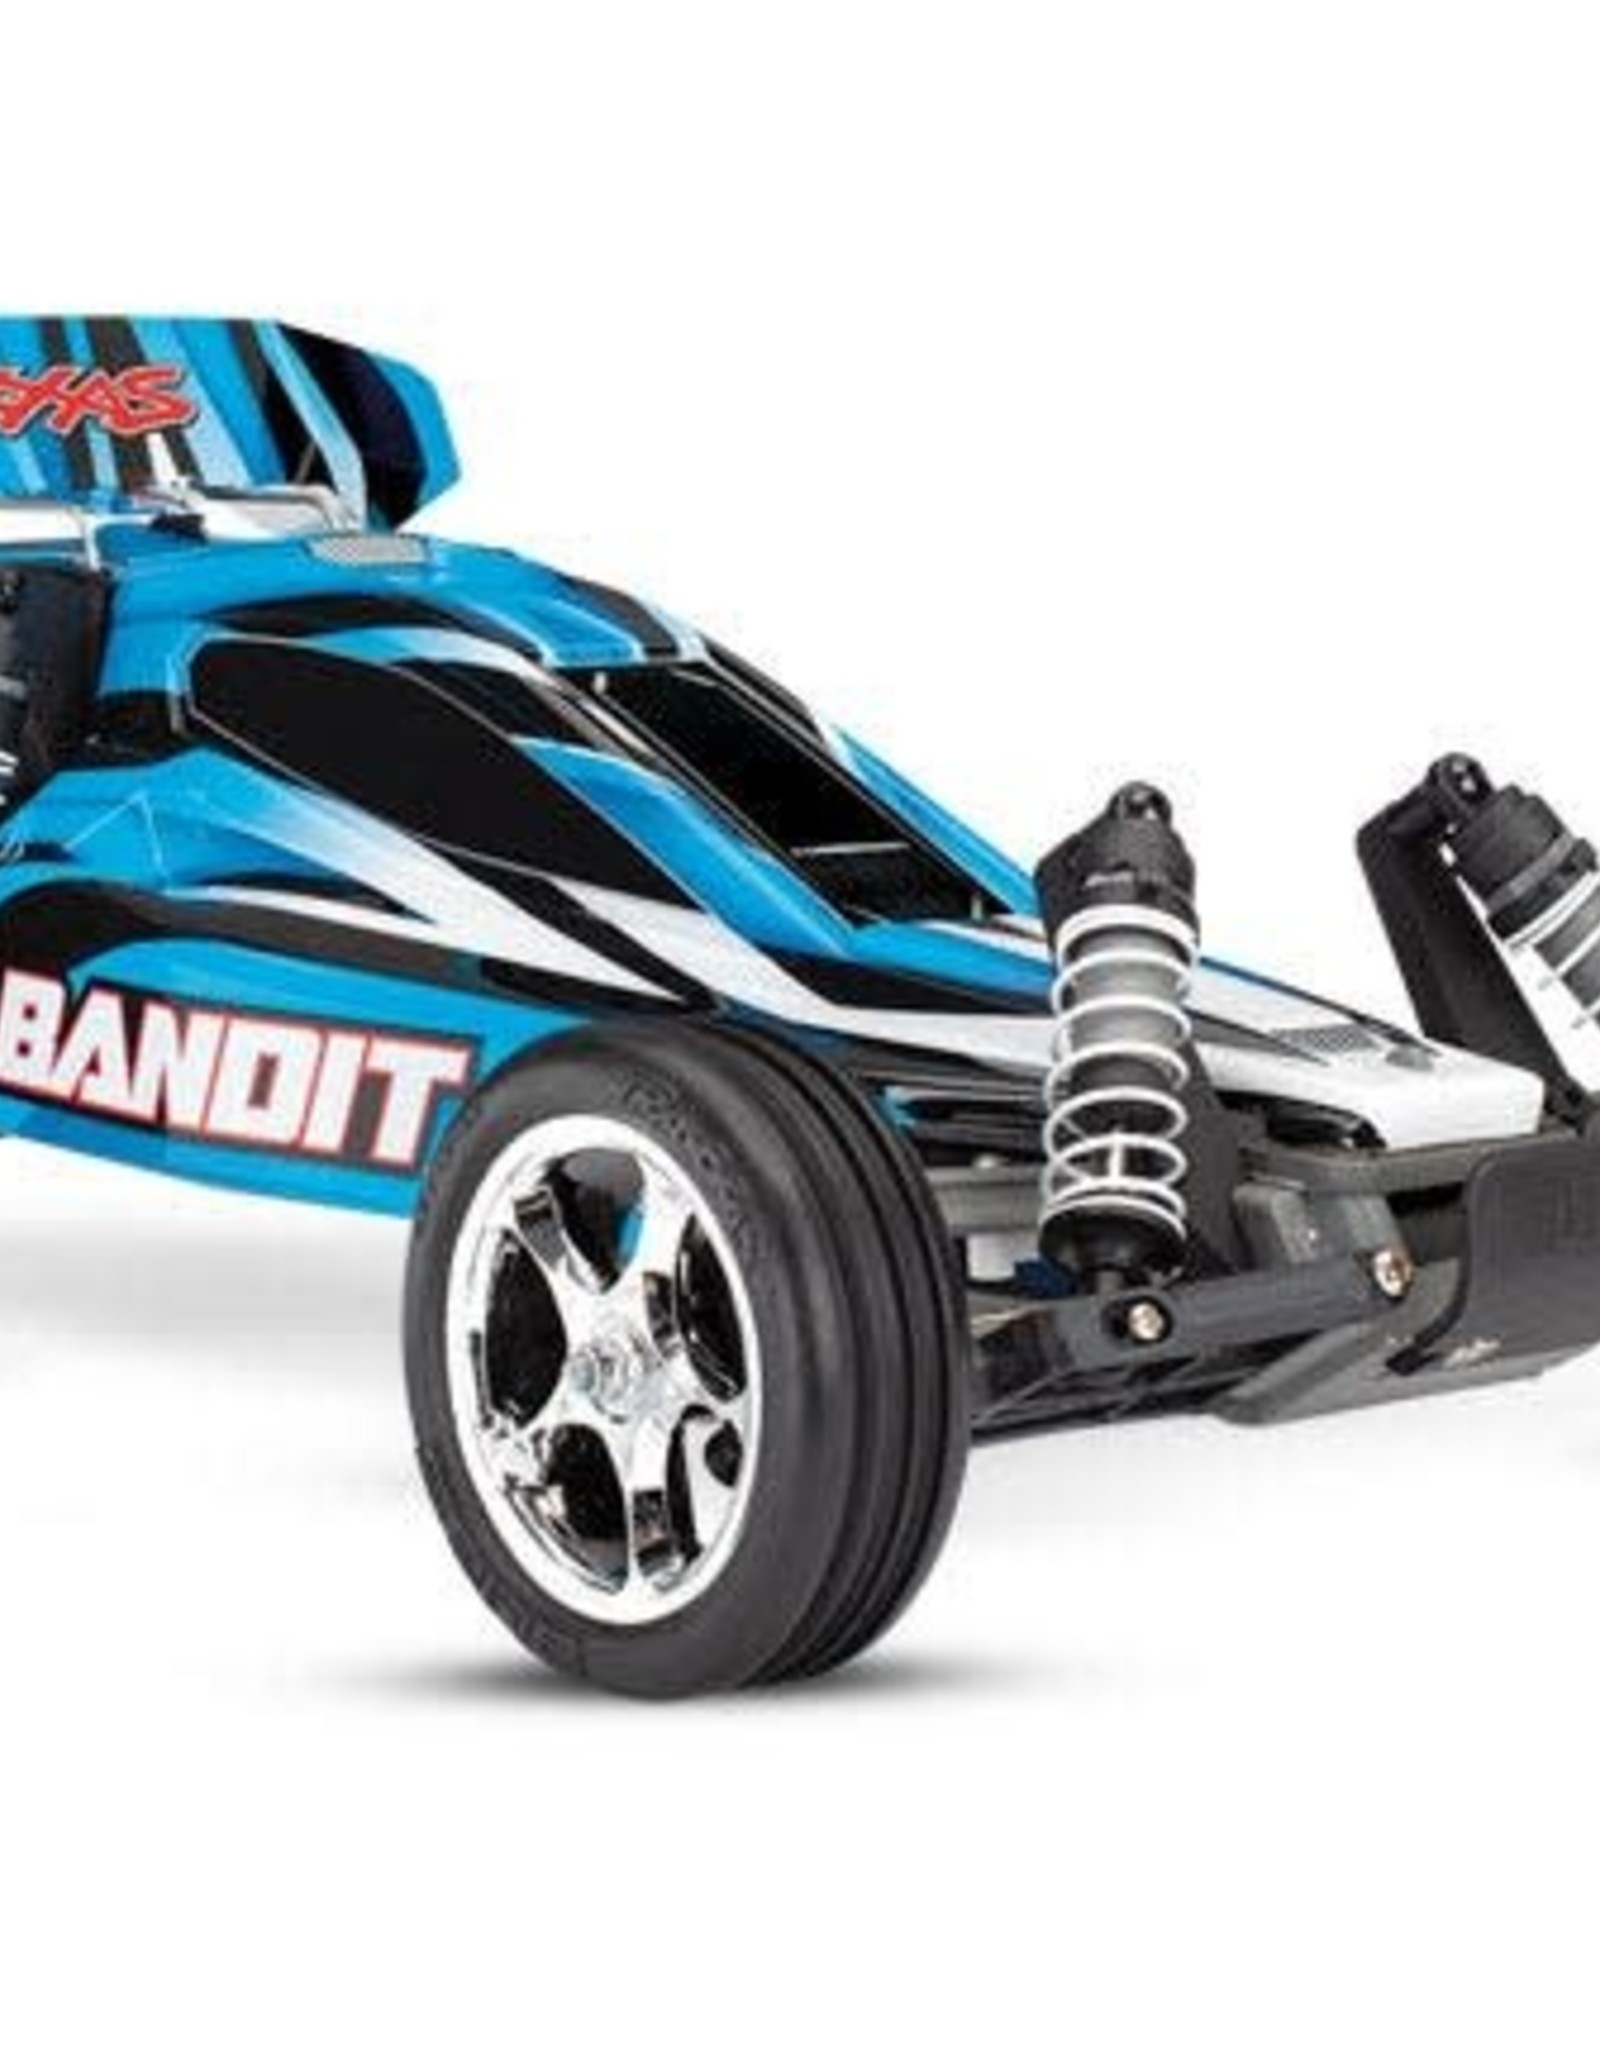 TRAXXAS BANDIT: 1/10 EXTREME SPORTS BUGGY no battery or charger